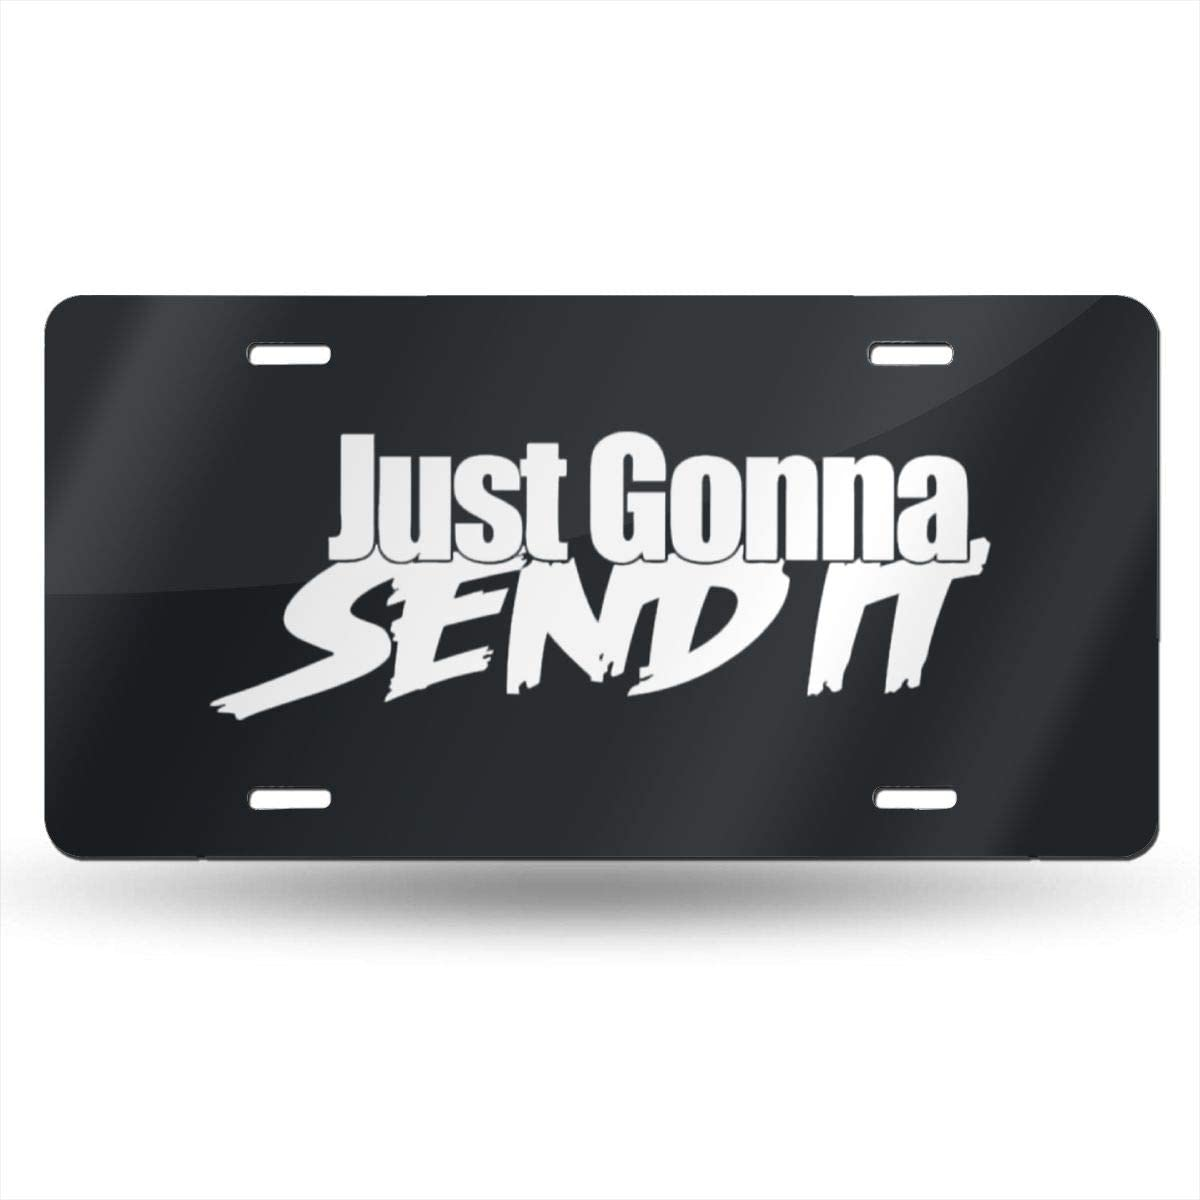 Dunpaiaa Just Gonna Send It Automobile 6X12 Front License Plate License//Vanity Plate